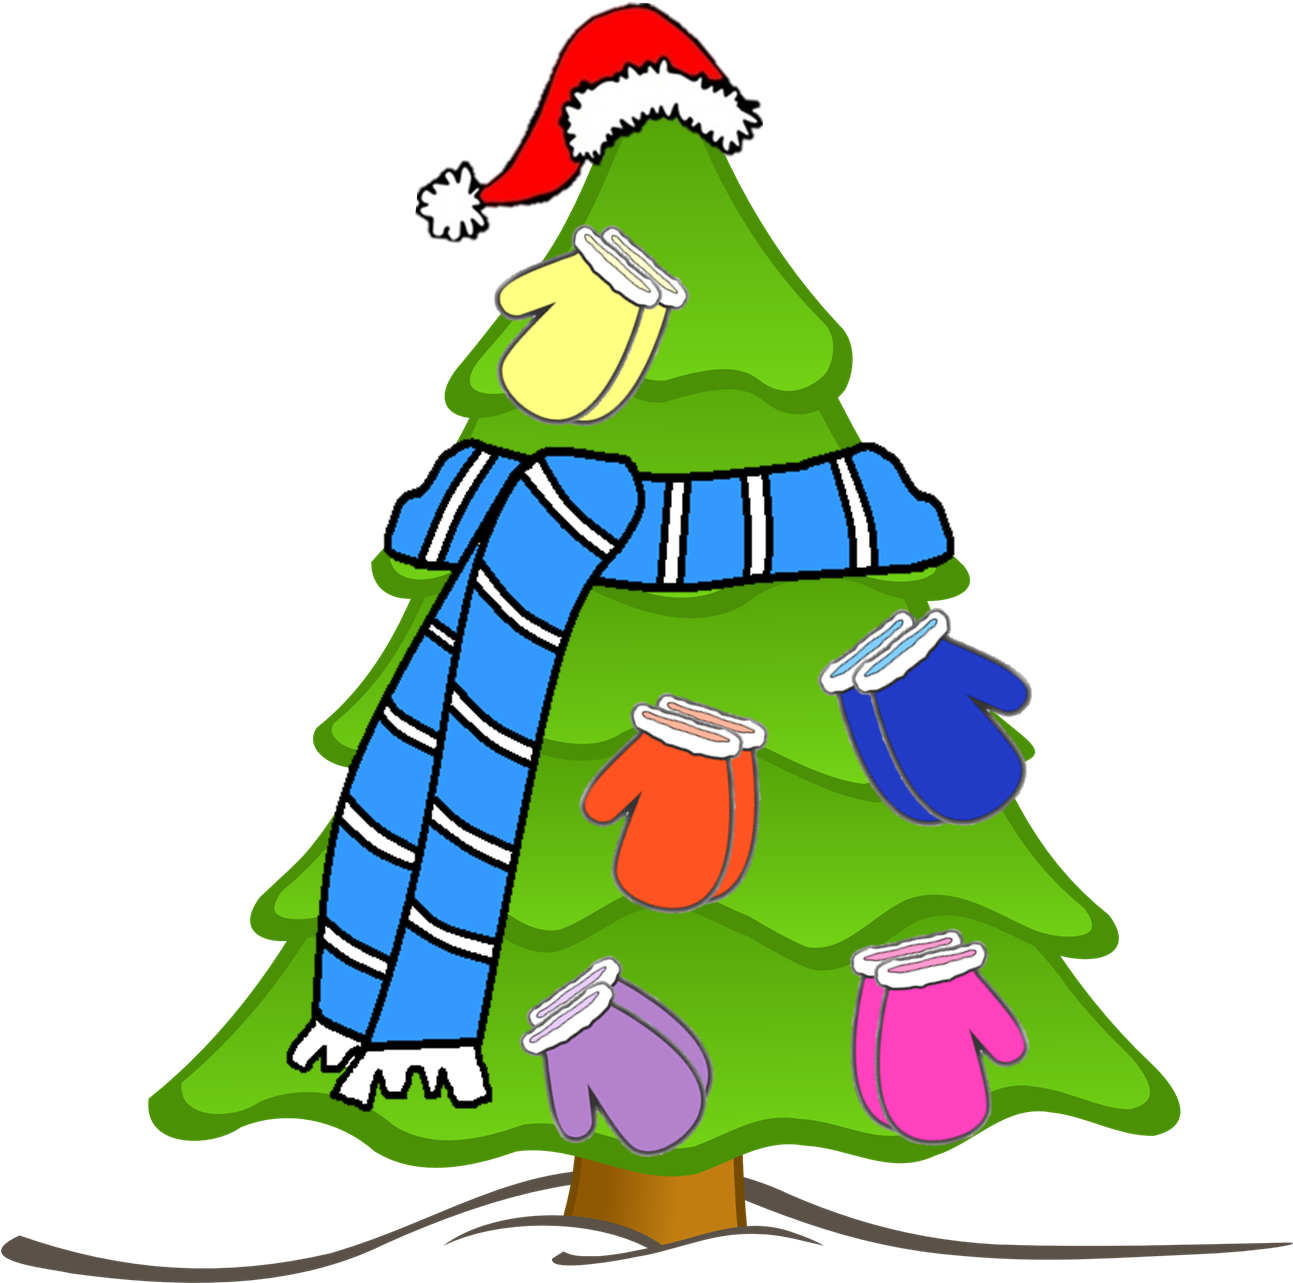 Download Transparent Background Christmas Tree Clipart Full Size